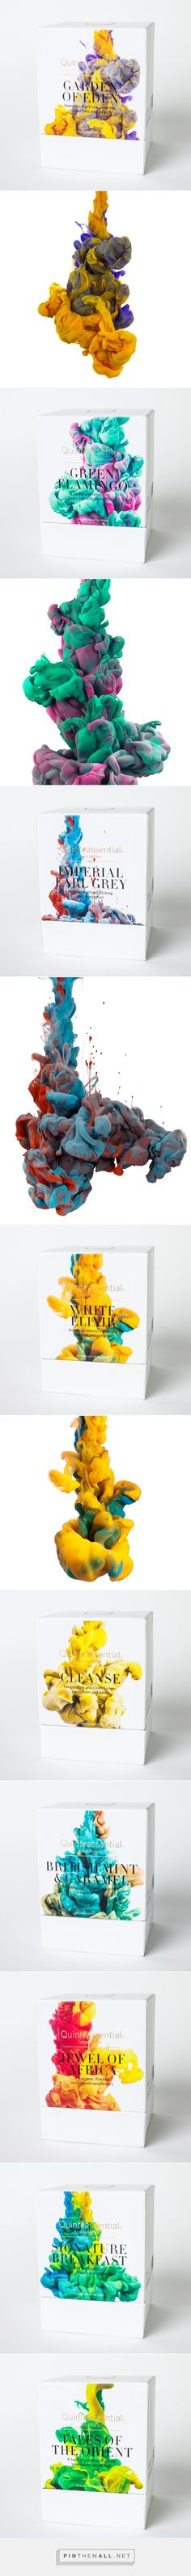 Quinteassential packaging on Behance by Alberto Seveso curated by Packaging Diva PD. Using science and art, Quinteassential brings to you a multi-sensory experience in the enjoyment of tea from renowned artist and photographer Alberto Seveso.